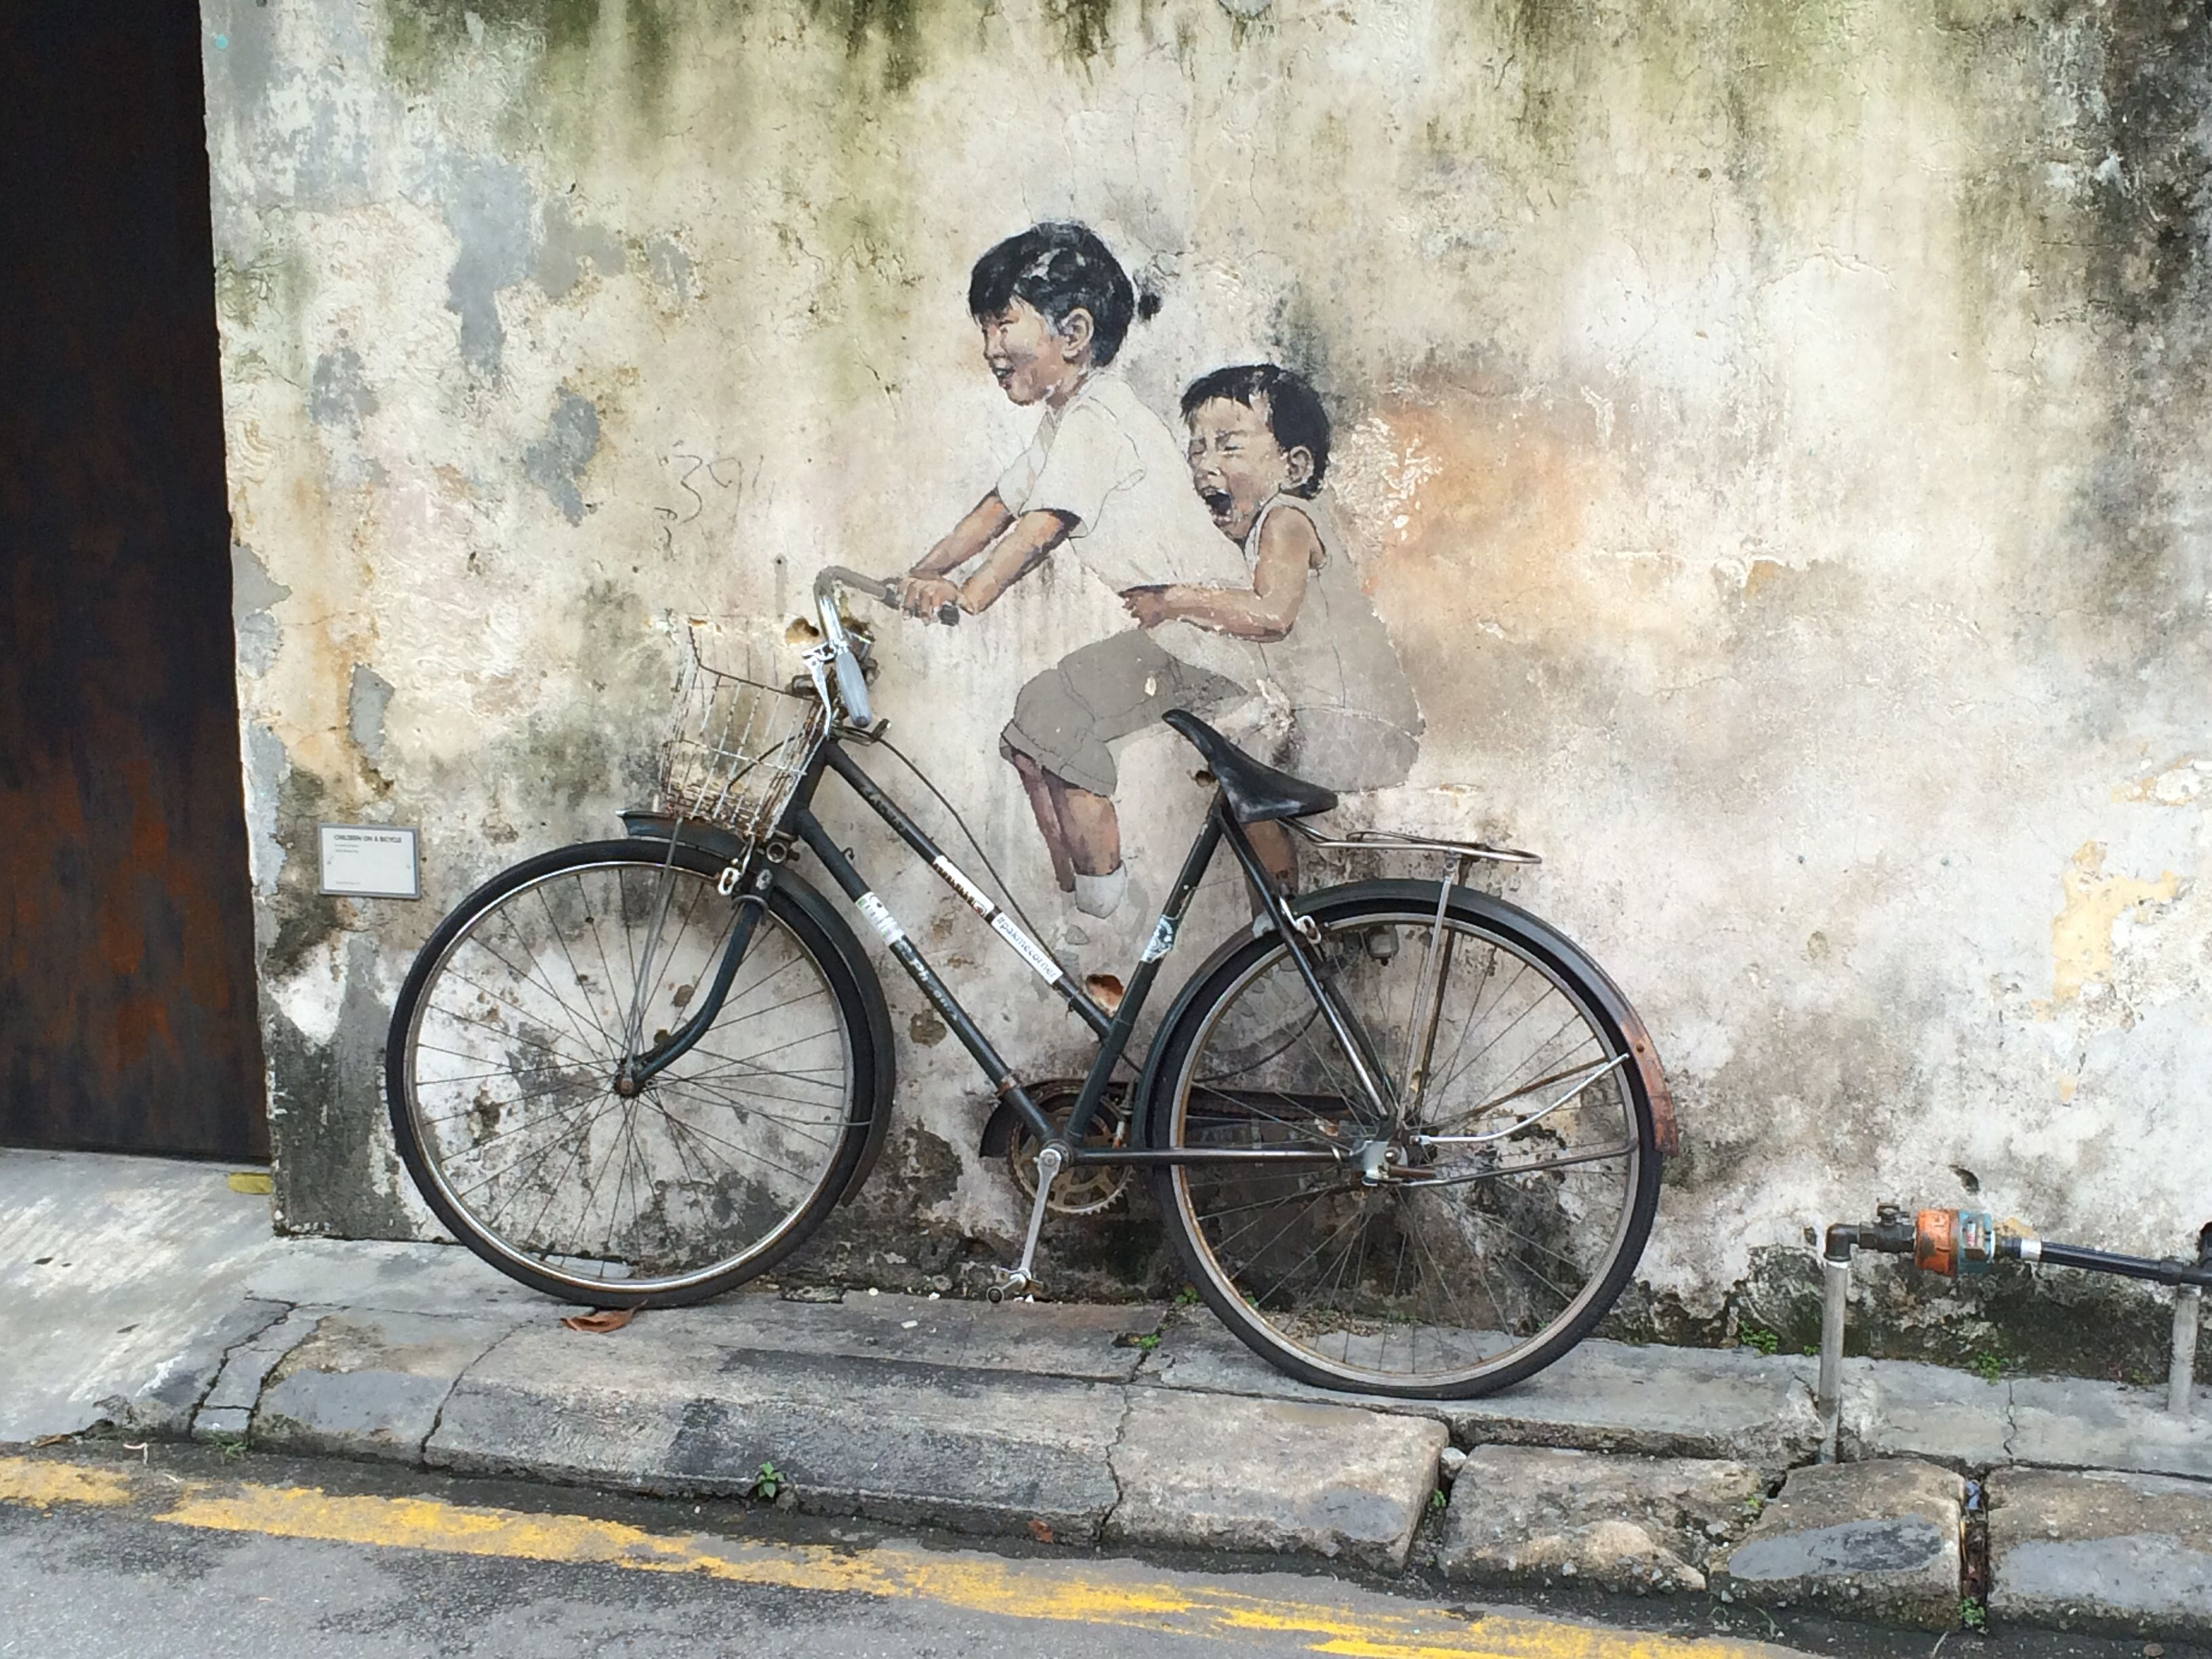 The most iconic penang street art two kids enjoying a bicycle ride